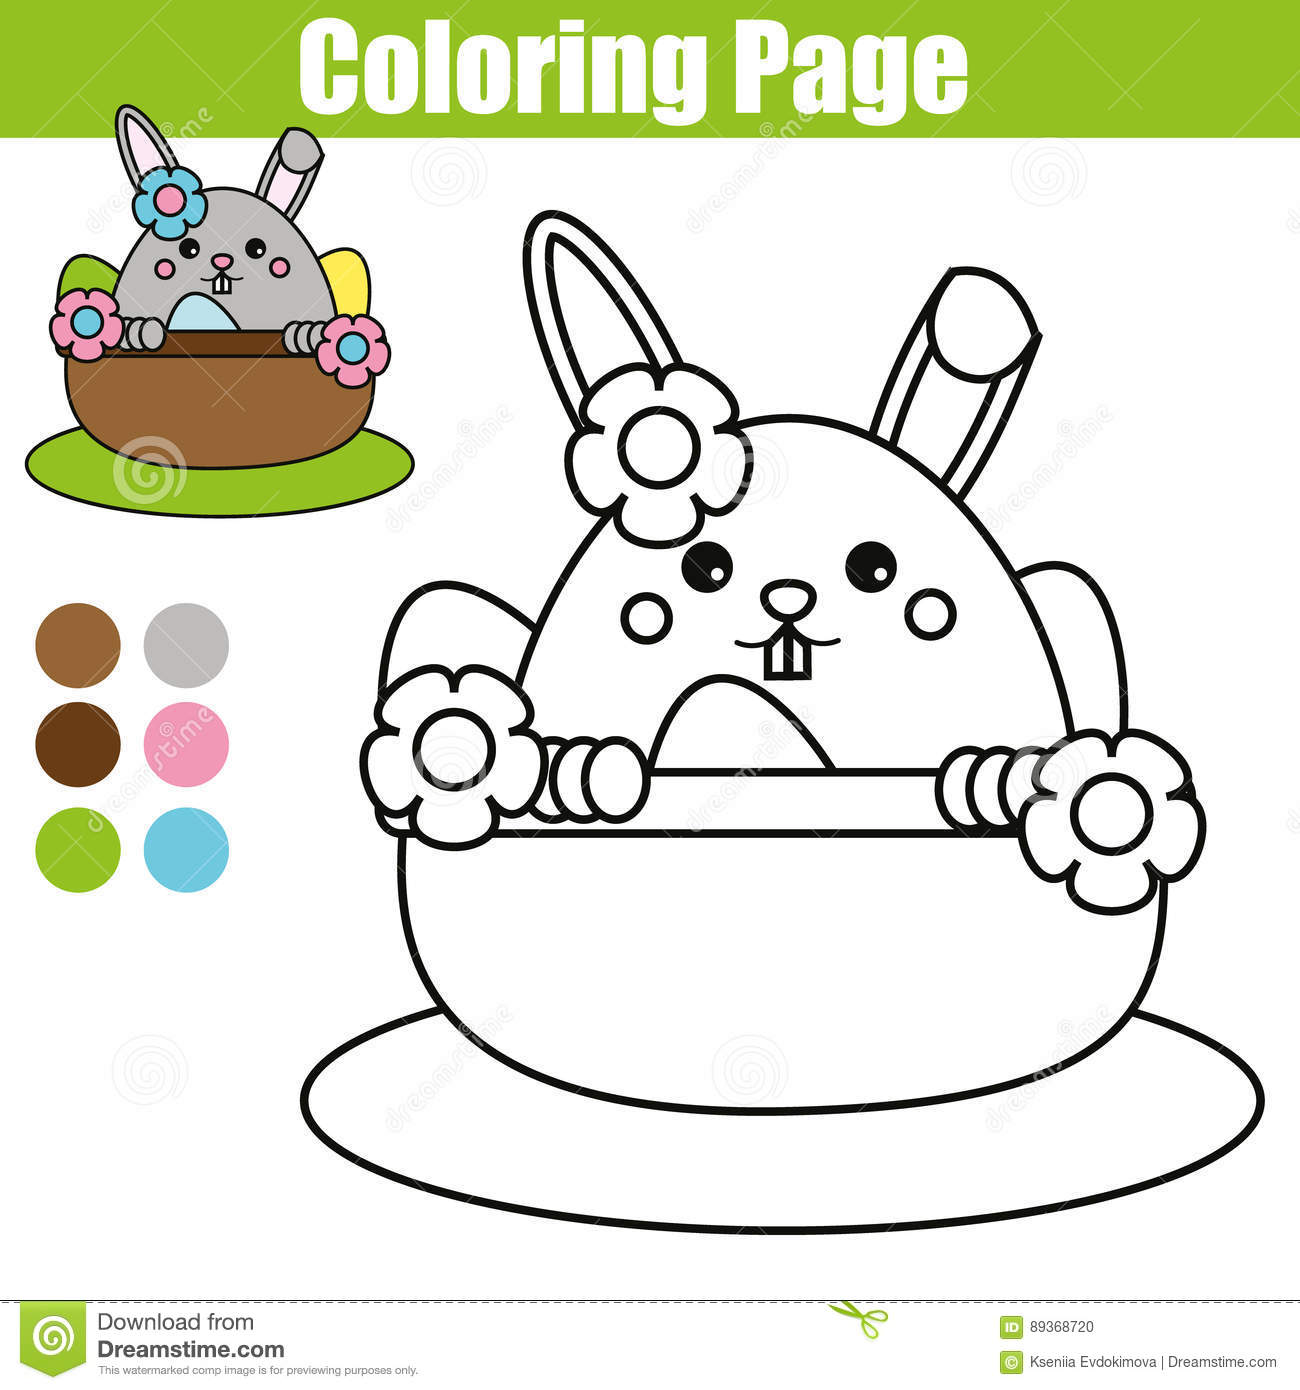 coloring page with easter bunny character printable worksheet